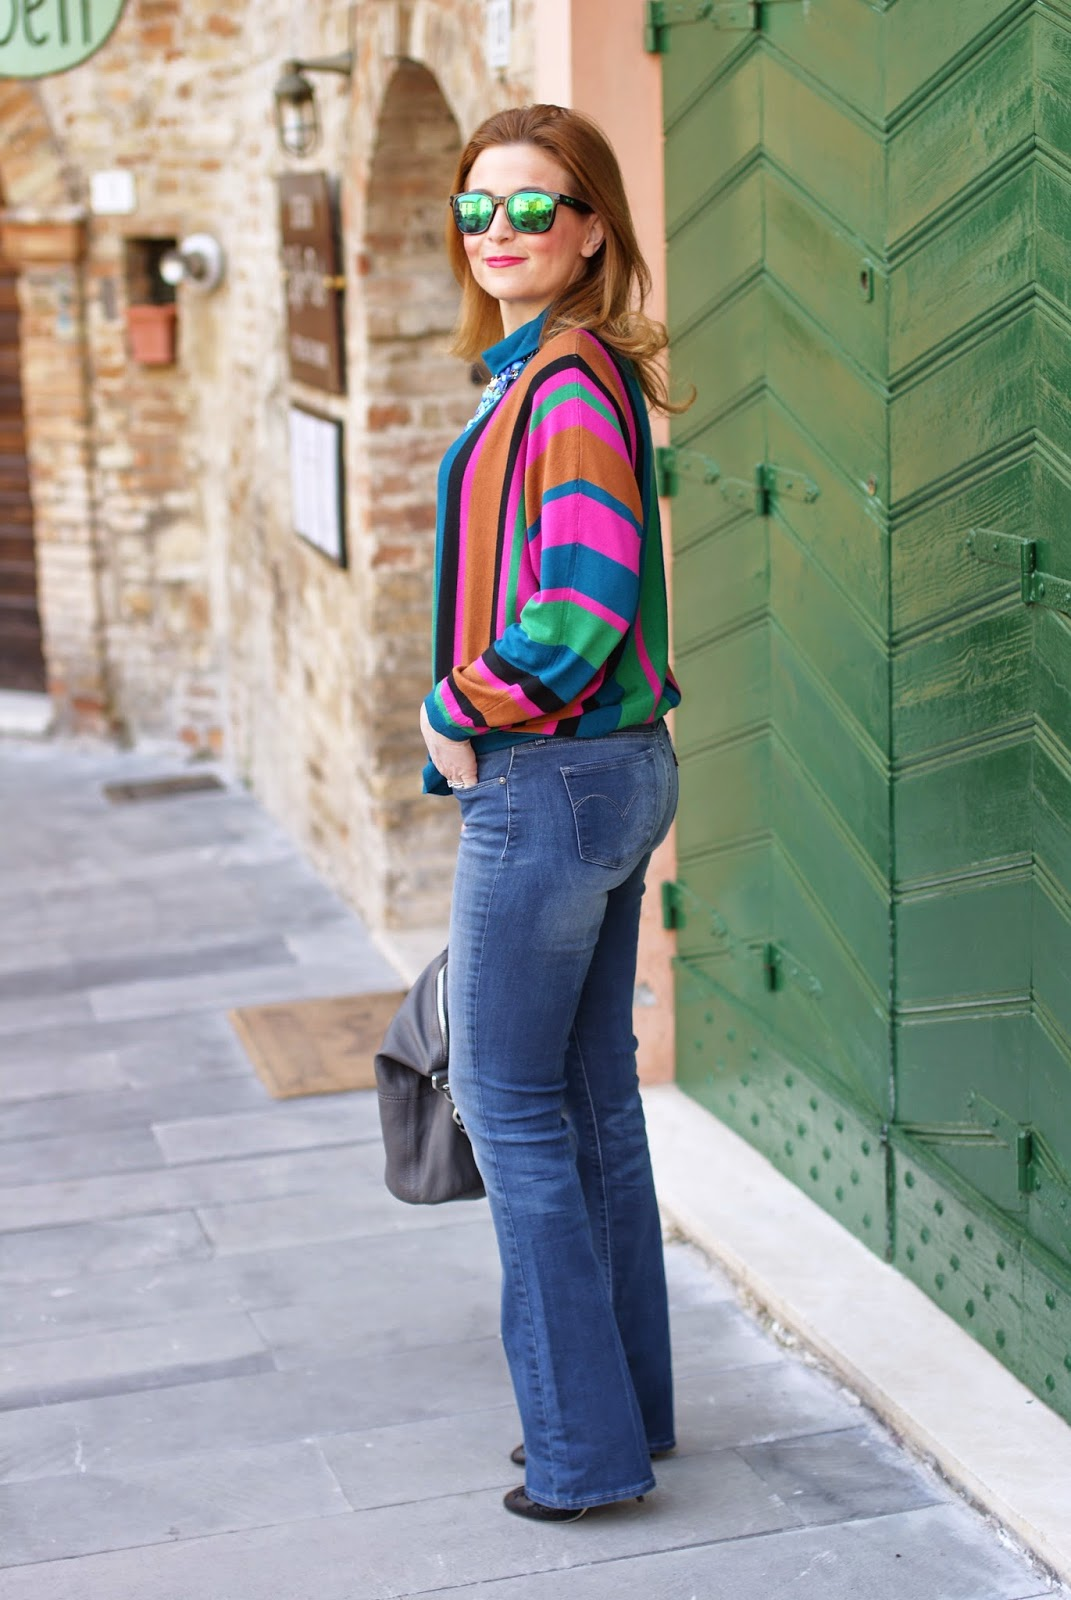 How to style flared jeans 2015, Levi's jeans for curvy bottoms, curvy bottoms in flares, pantaloni a zampa di elefante, fashion blogger 70s style, Givenchy Nightingale grey bag, Fashion and Cookies fashion blog